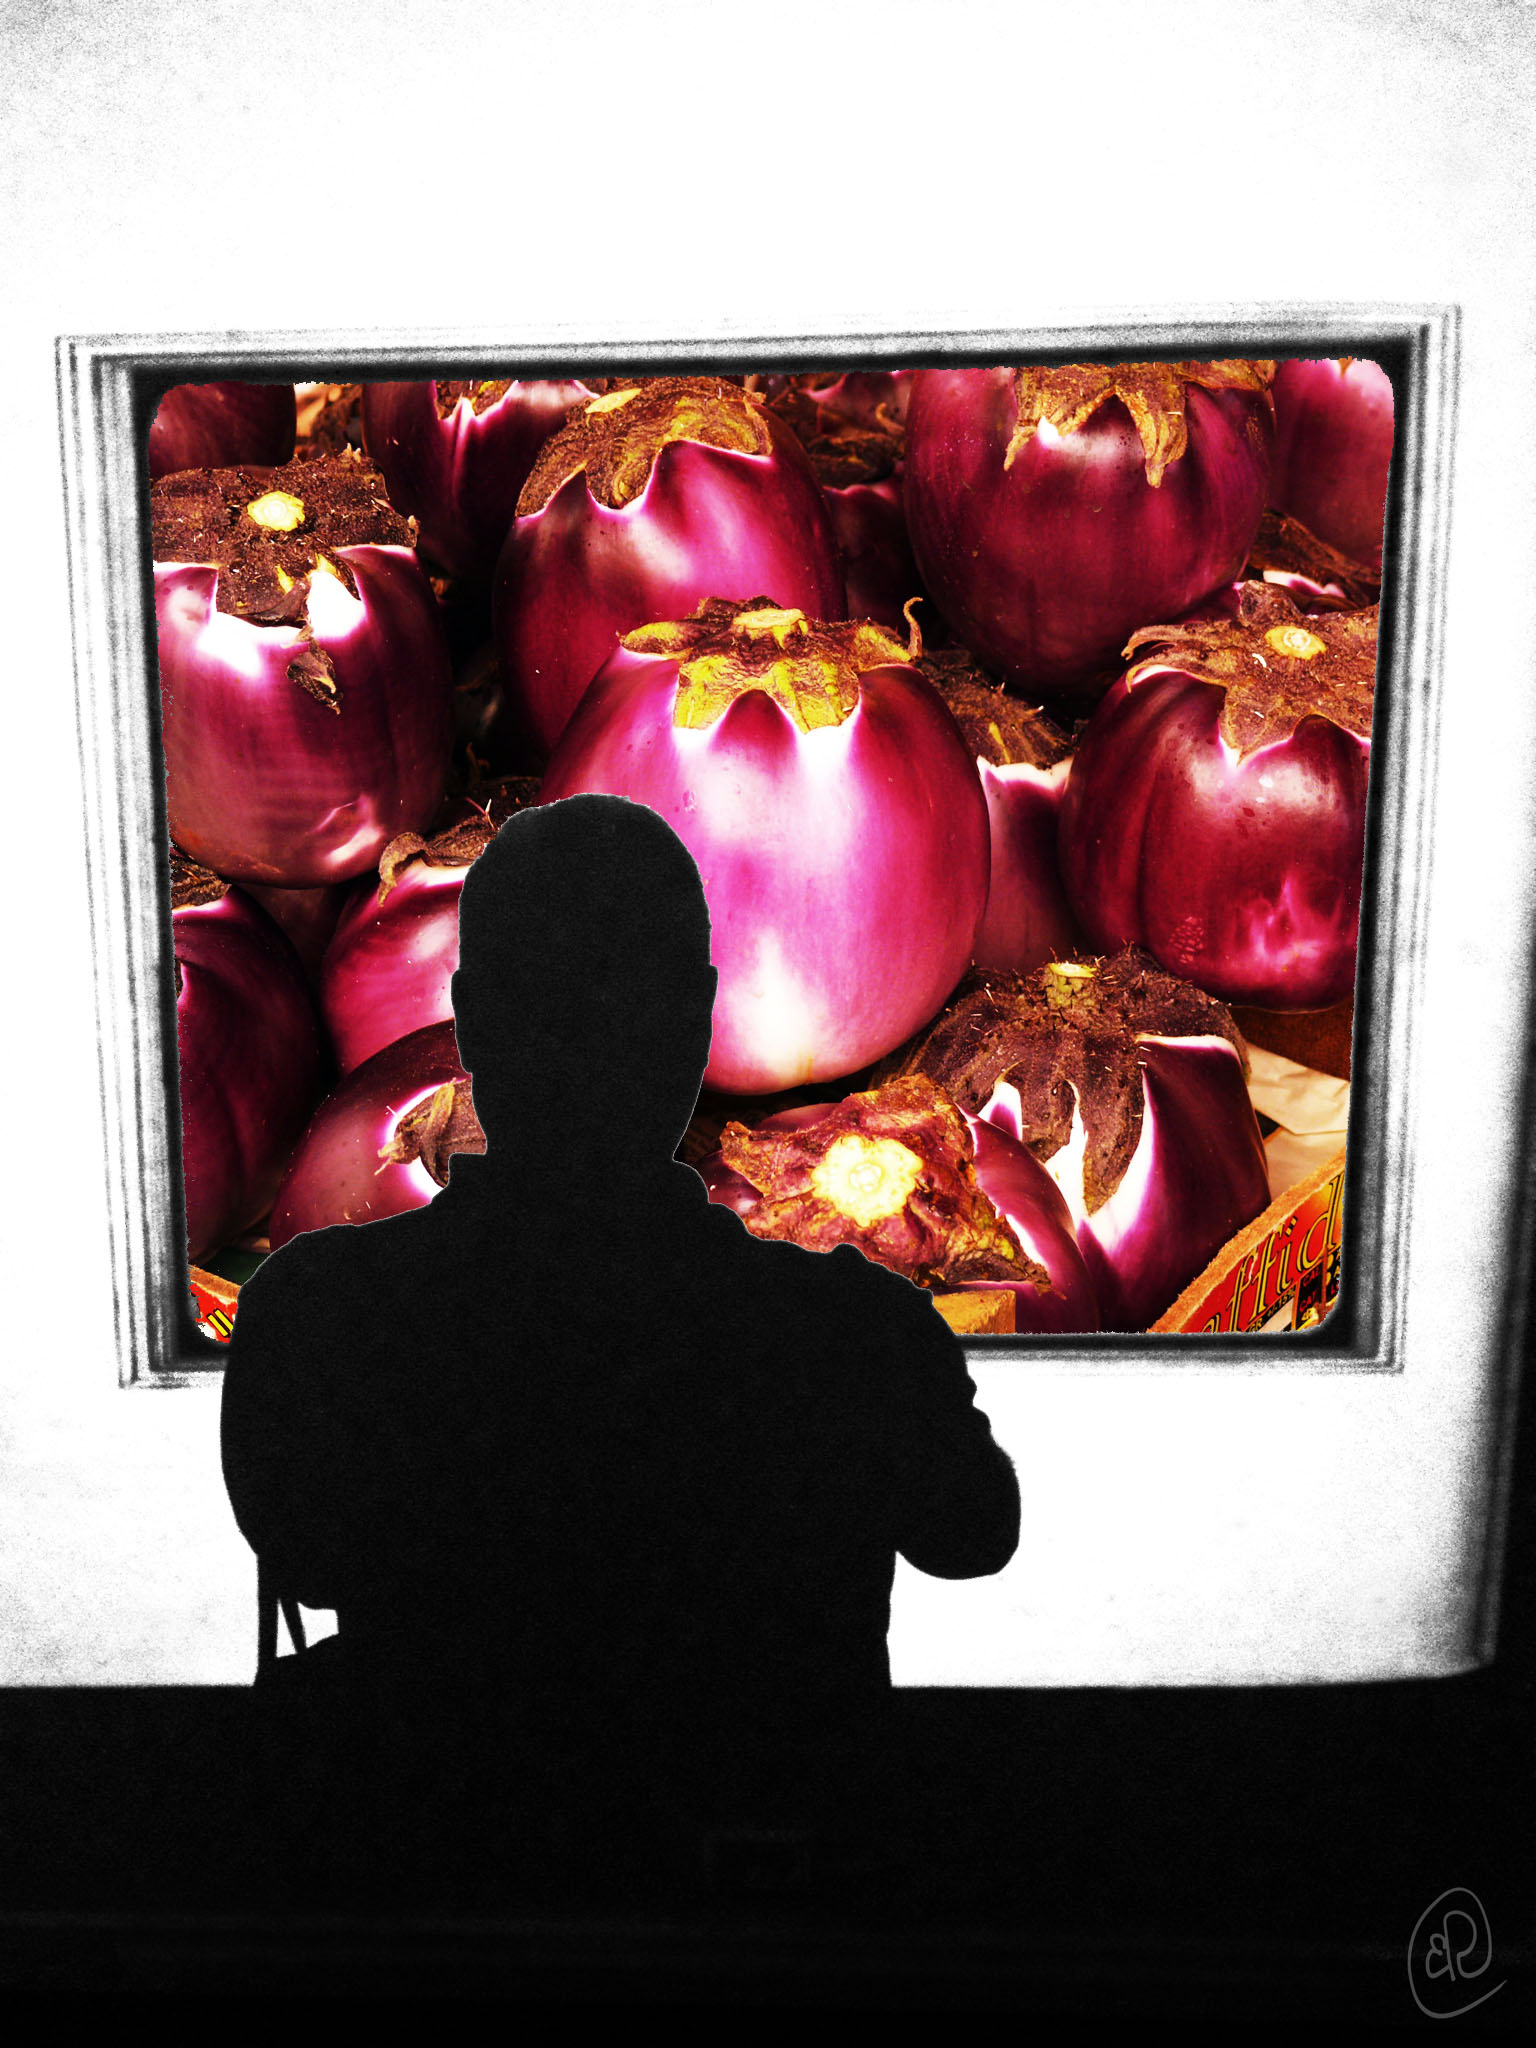 Selfie with Eggplants.jpg